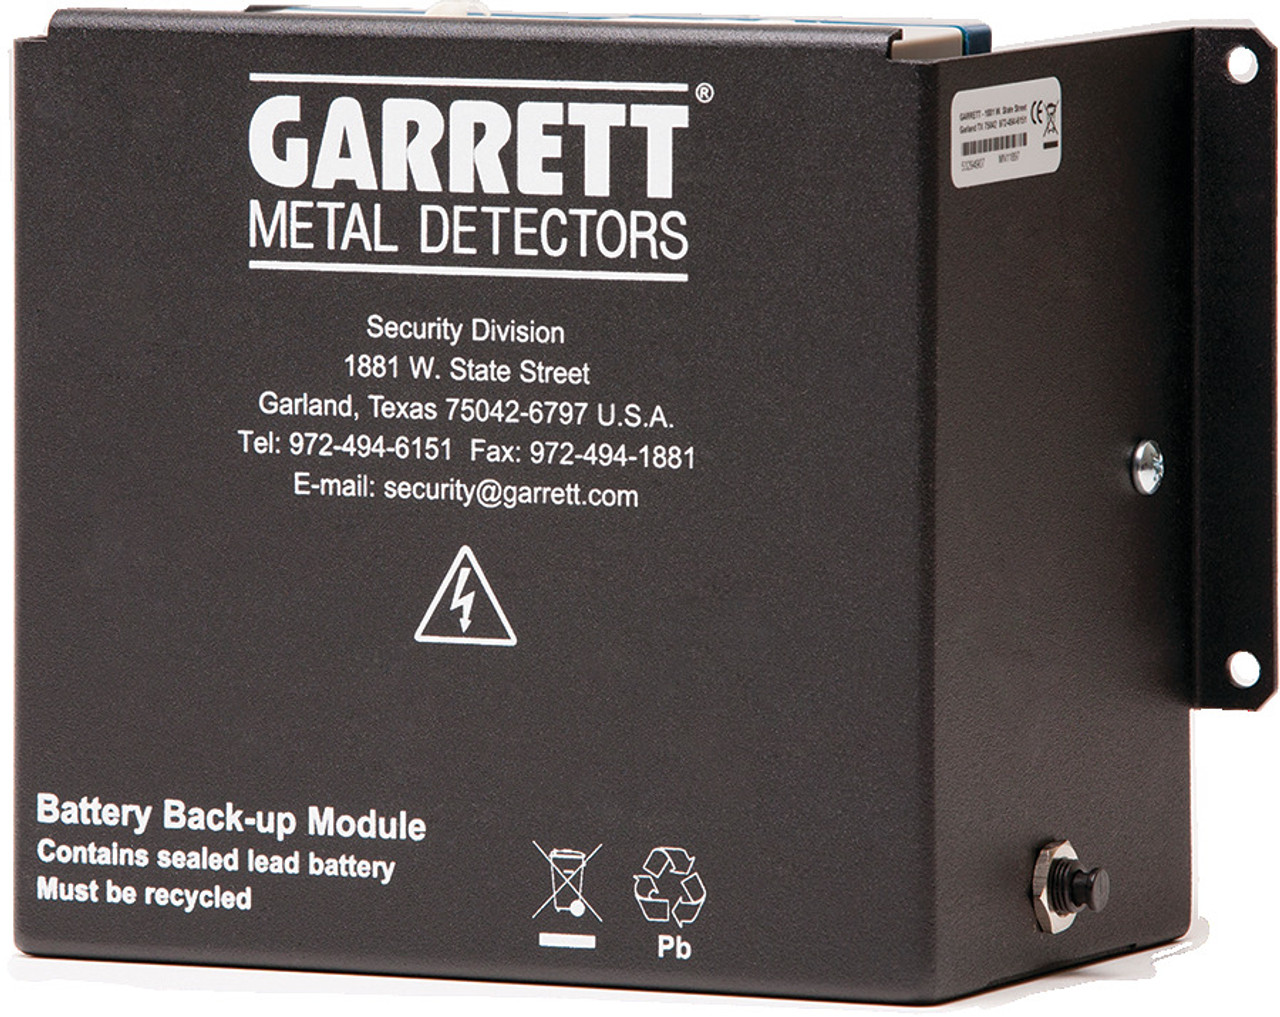 Garrett PD 6500i Mobile Walk-Through Metal Detector - Battery Modules